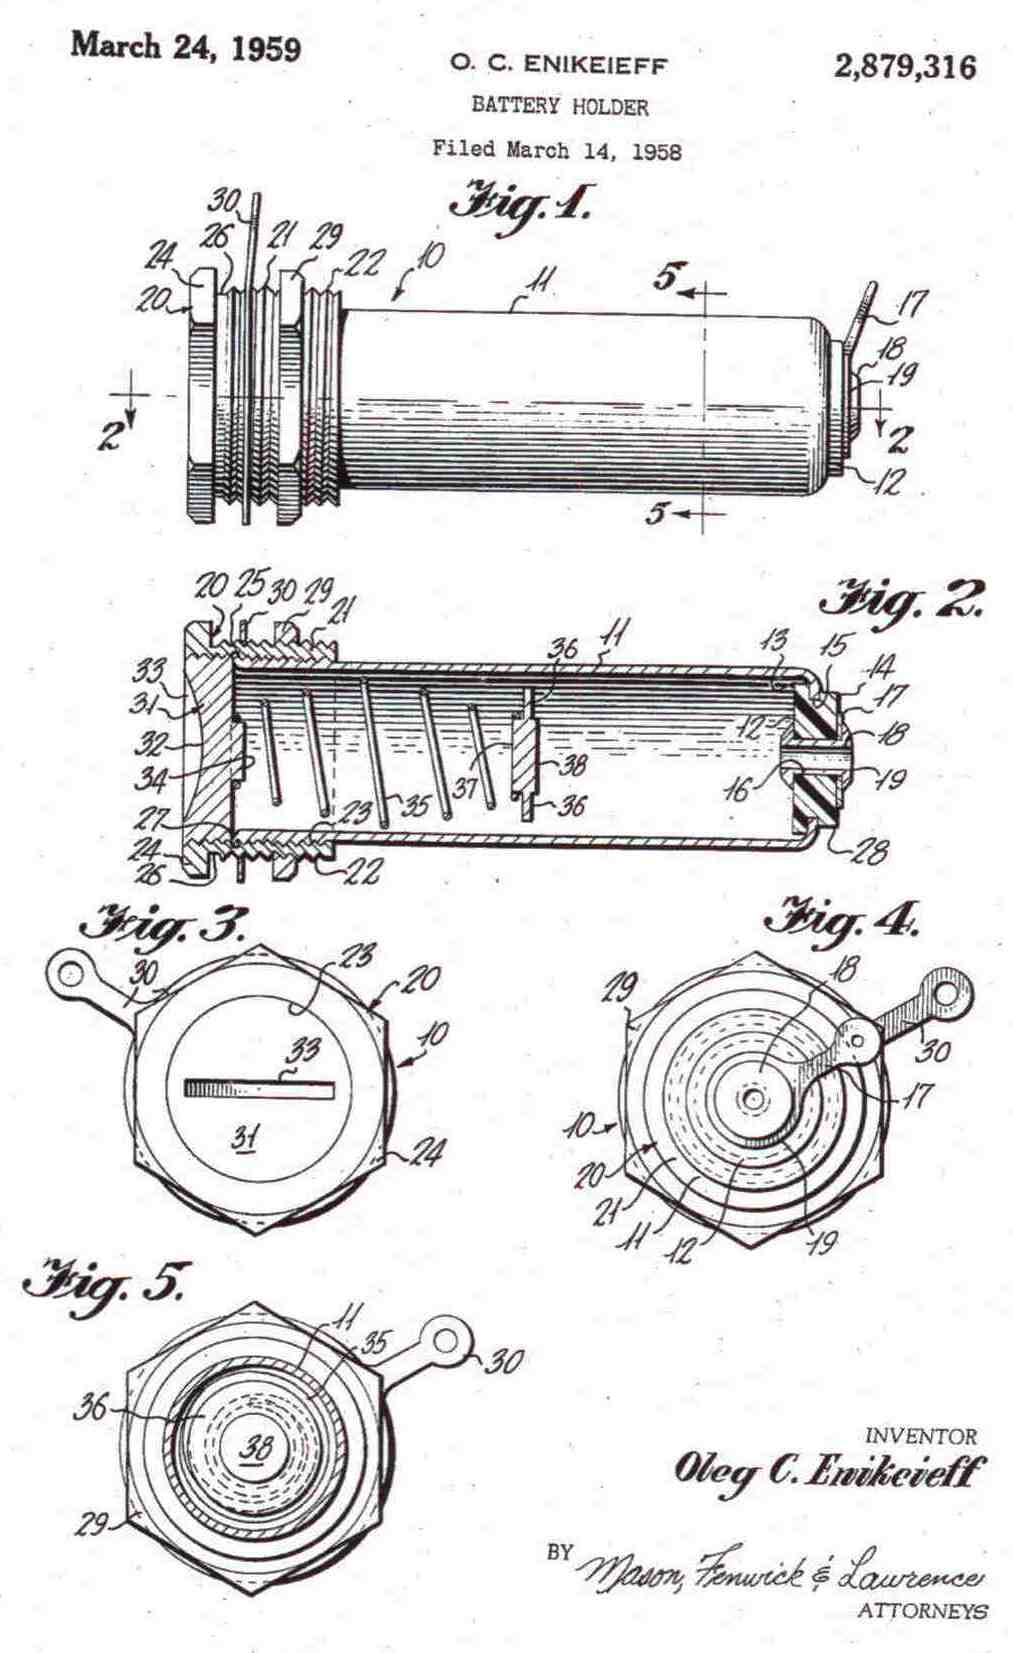 1959 flashlight patent